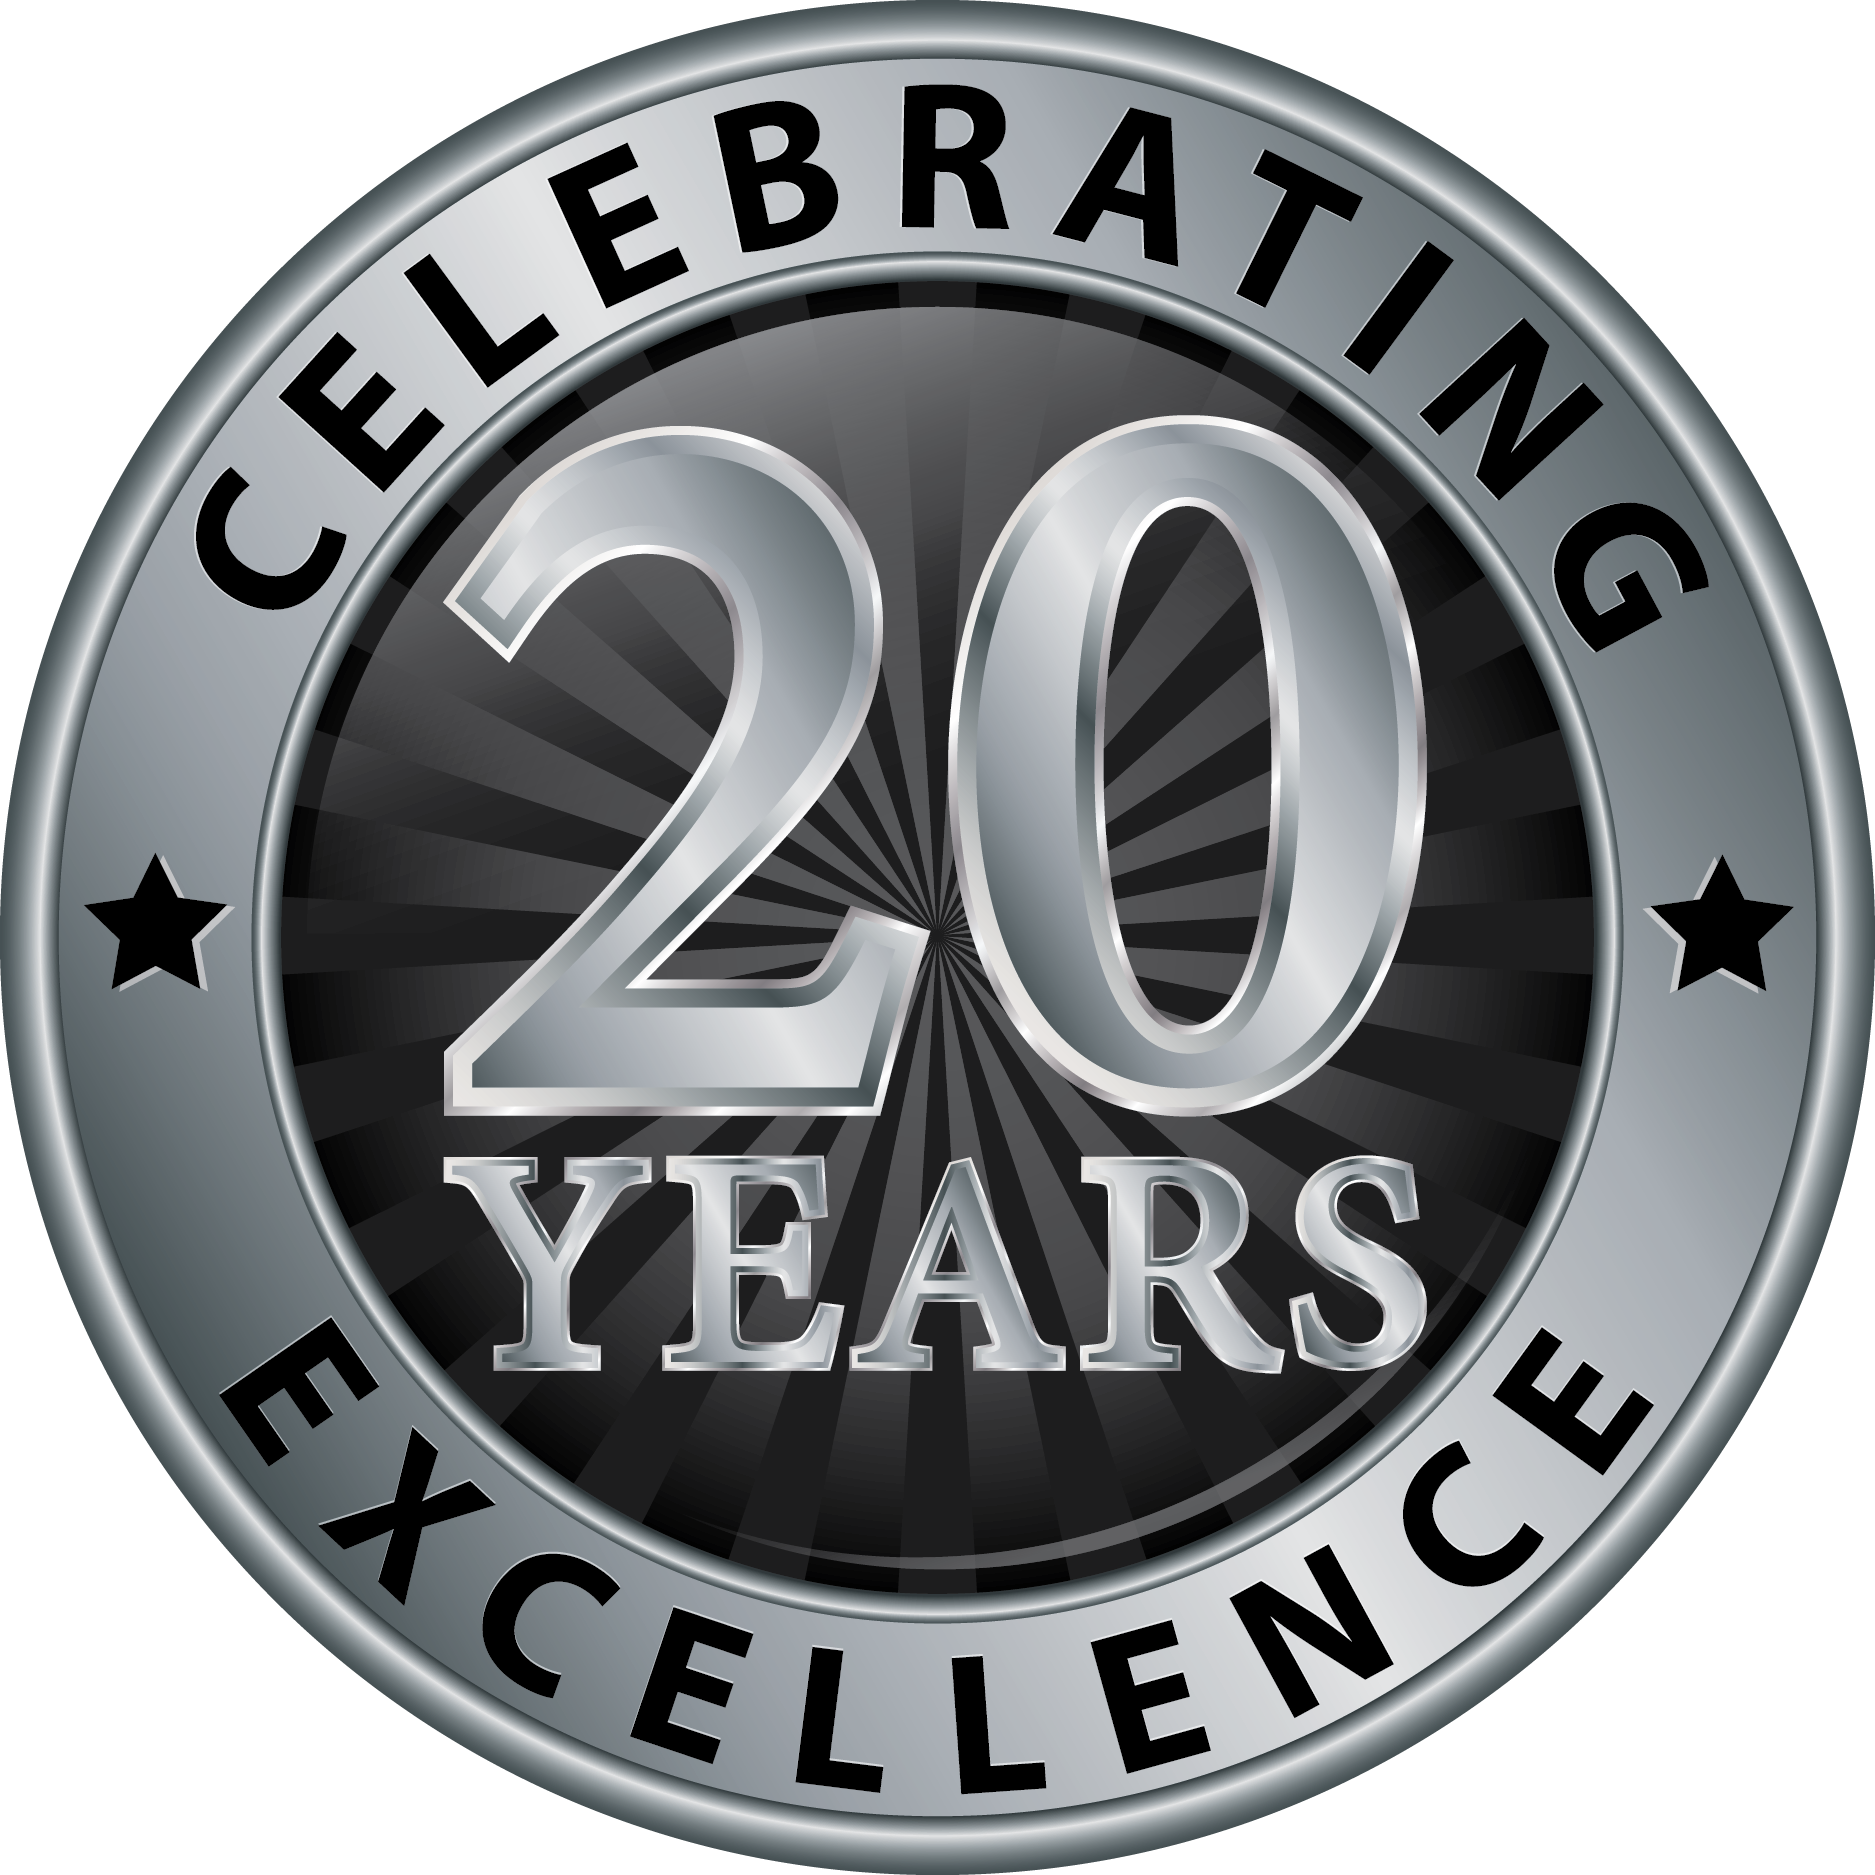 Celebrating 20 Years Excellence